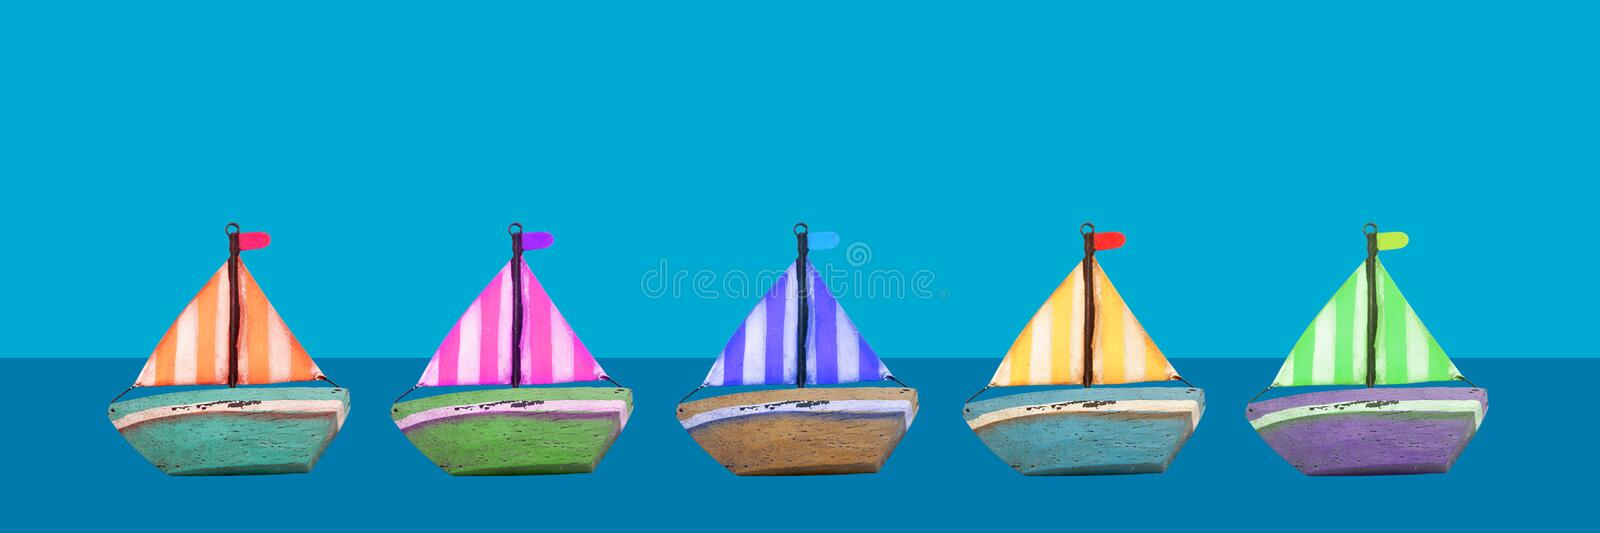 Colourful old wooden toy boats banner. Blue background stock image